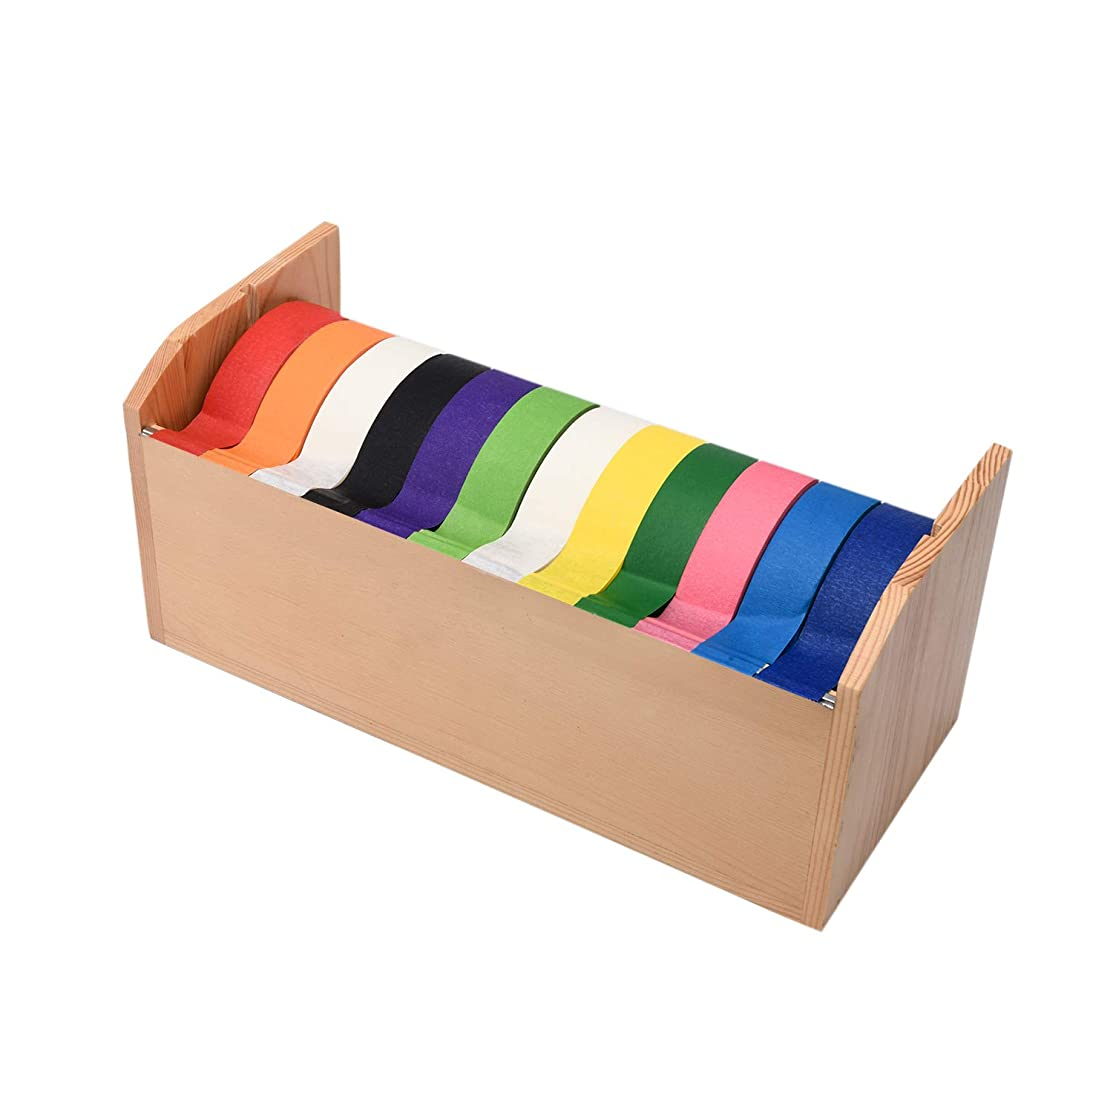 Decorative Children's Craft Tape Wooden Dispenser with 12 Assorted Color 1 inch Tape Rolls